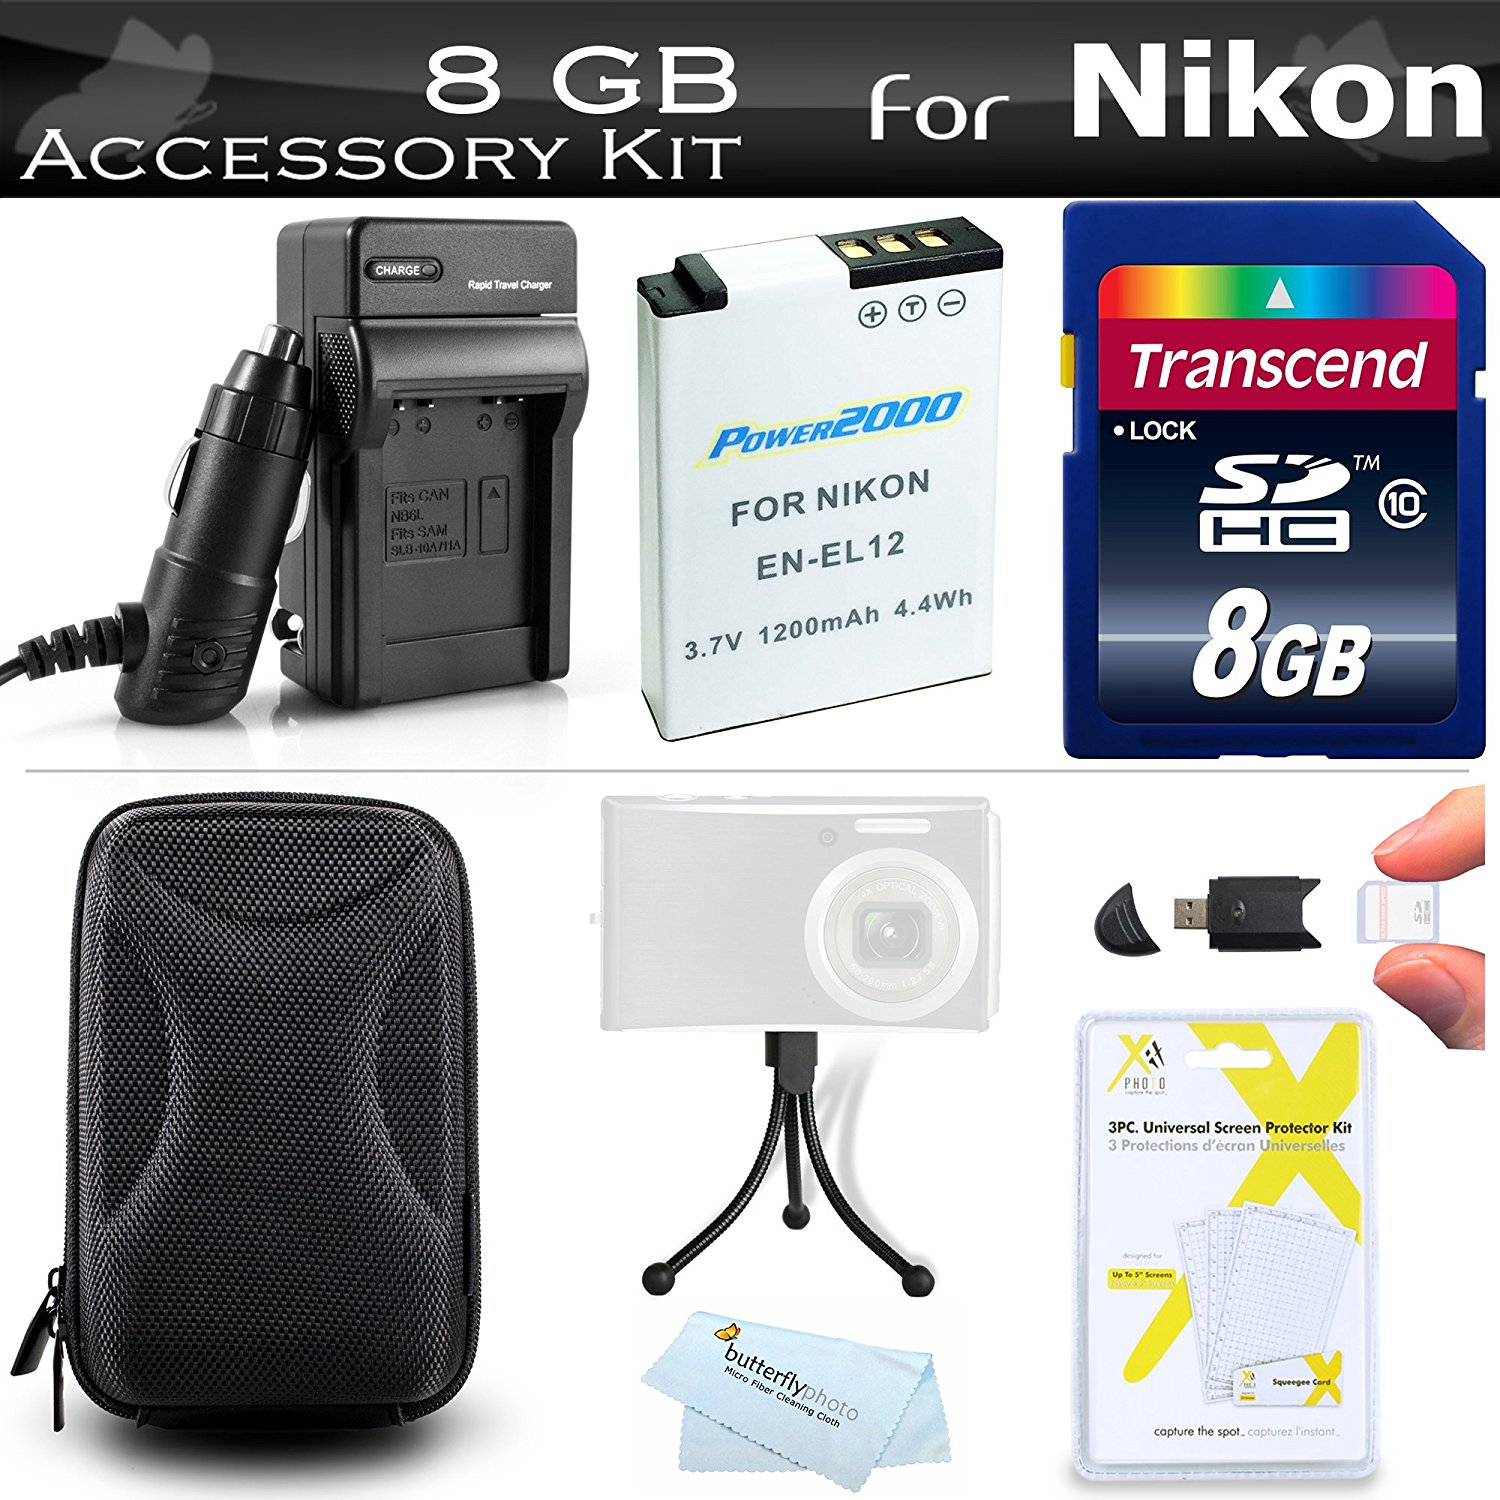 8GB Accessories Kit For Nikon Coolpix S9900, A900, S9700,...